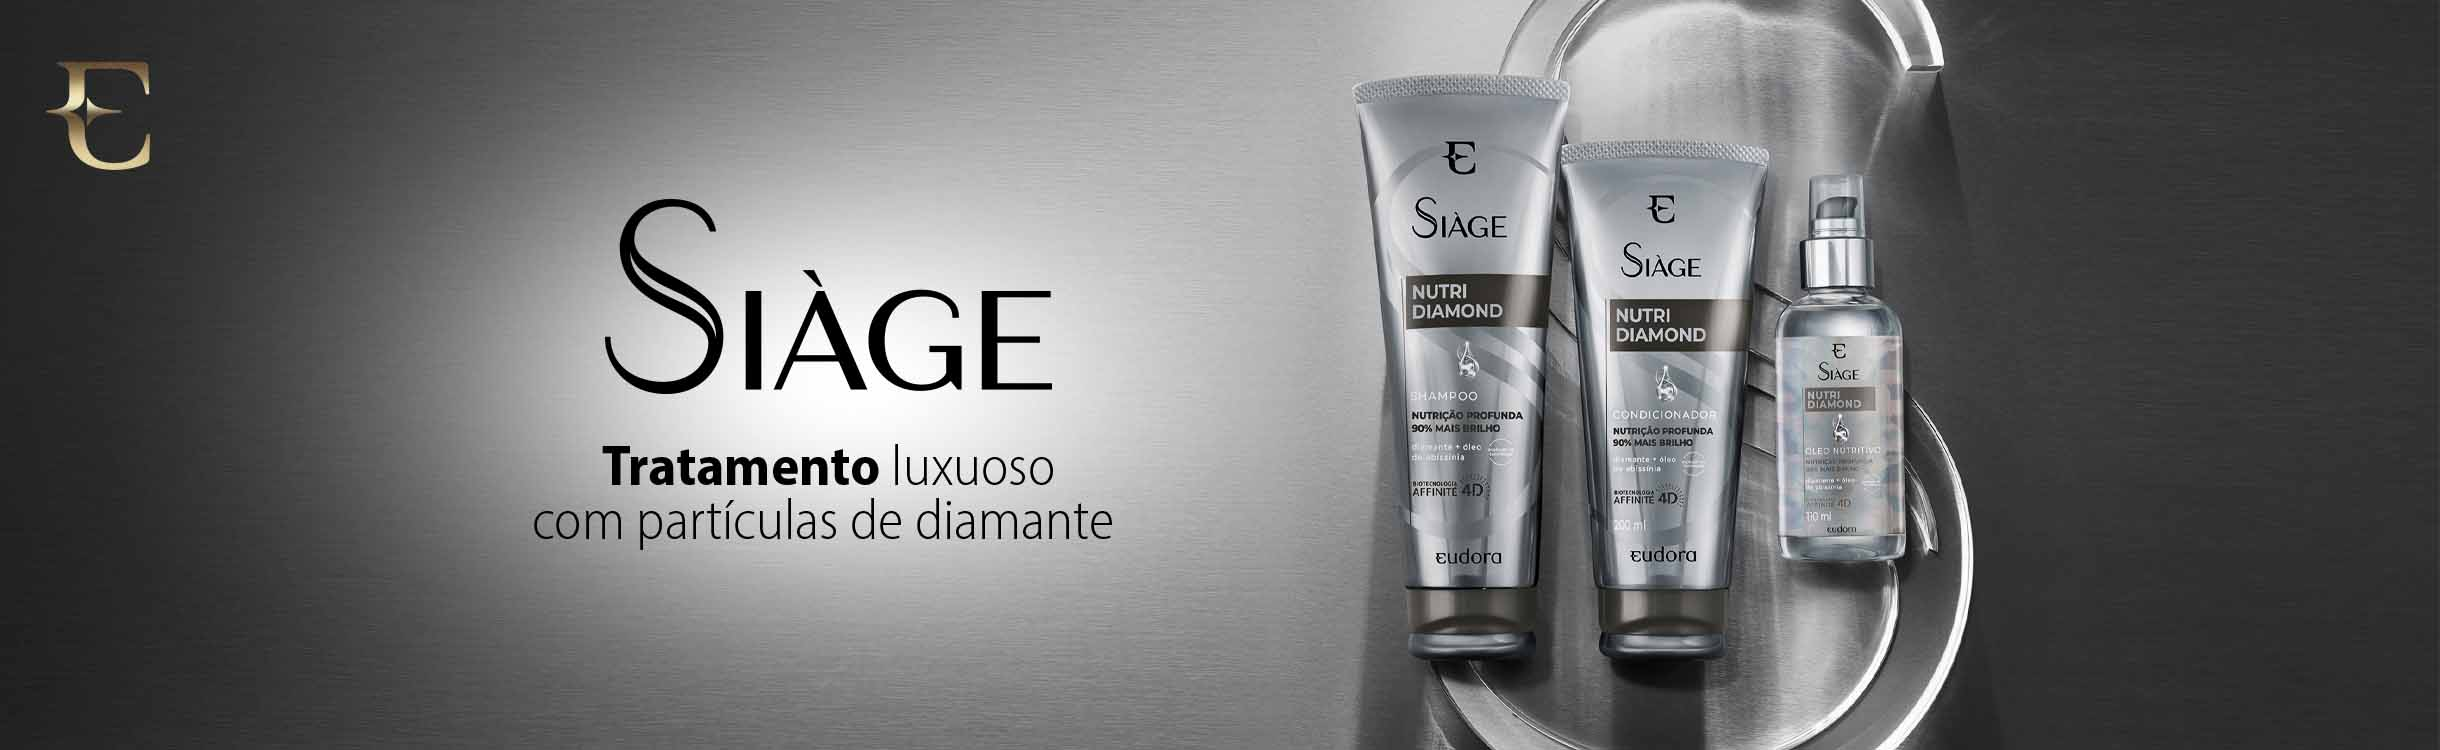 Siàge Nutri Diamond